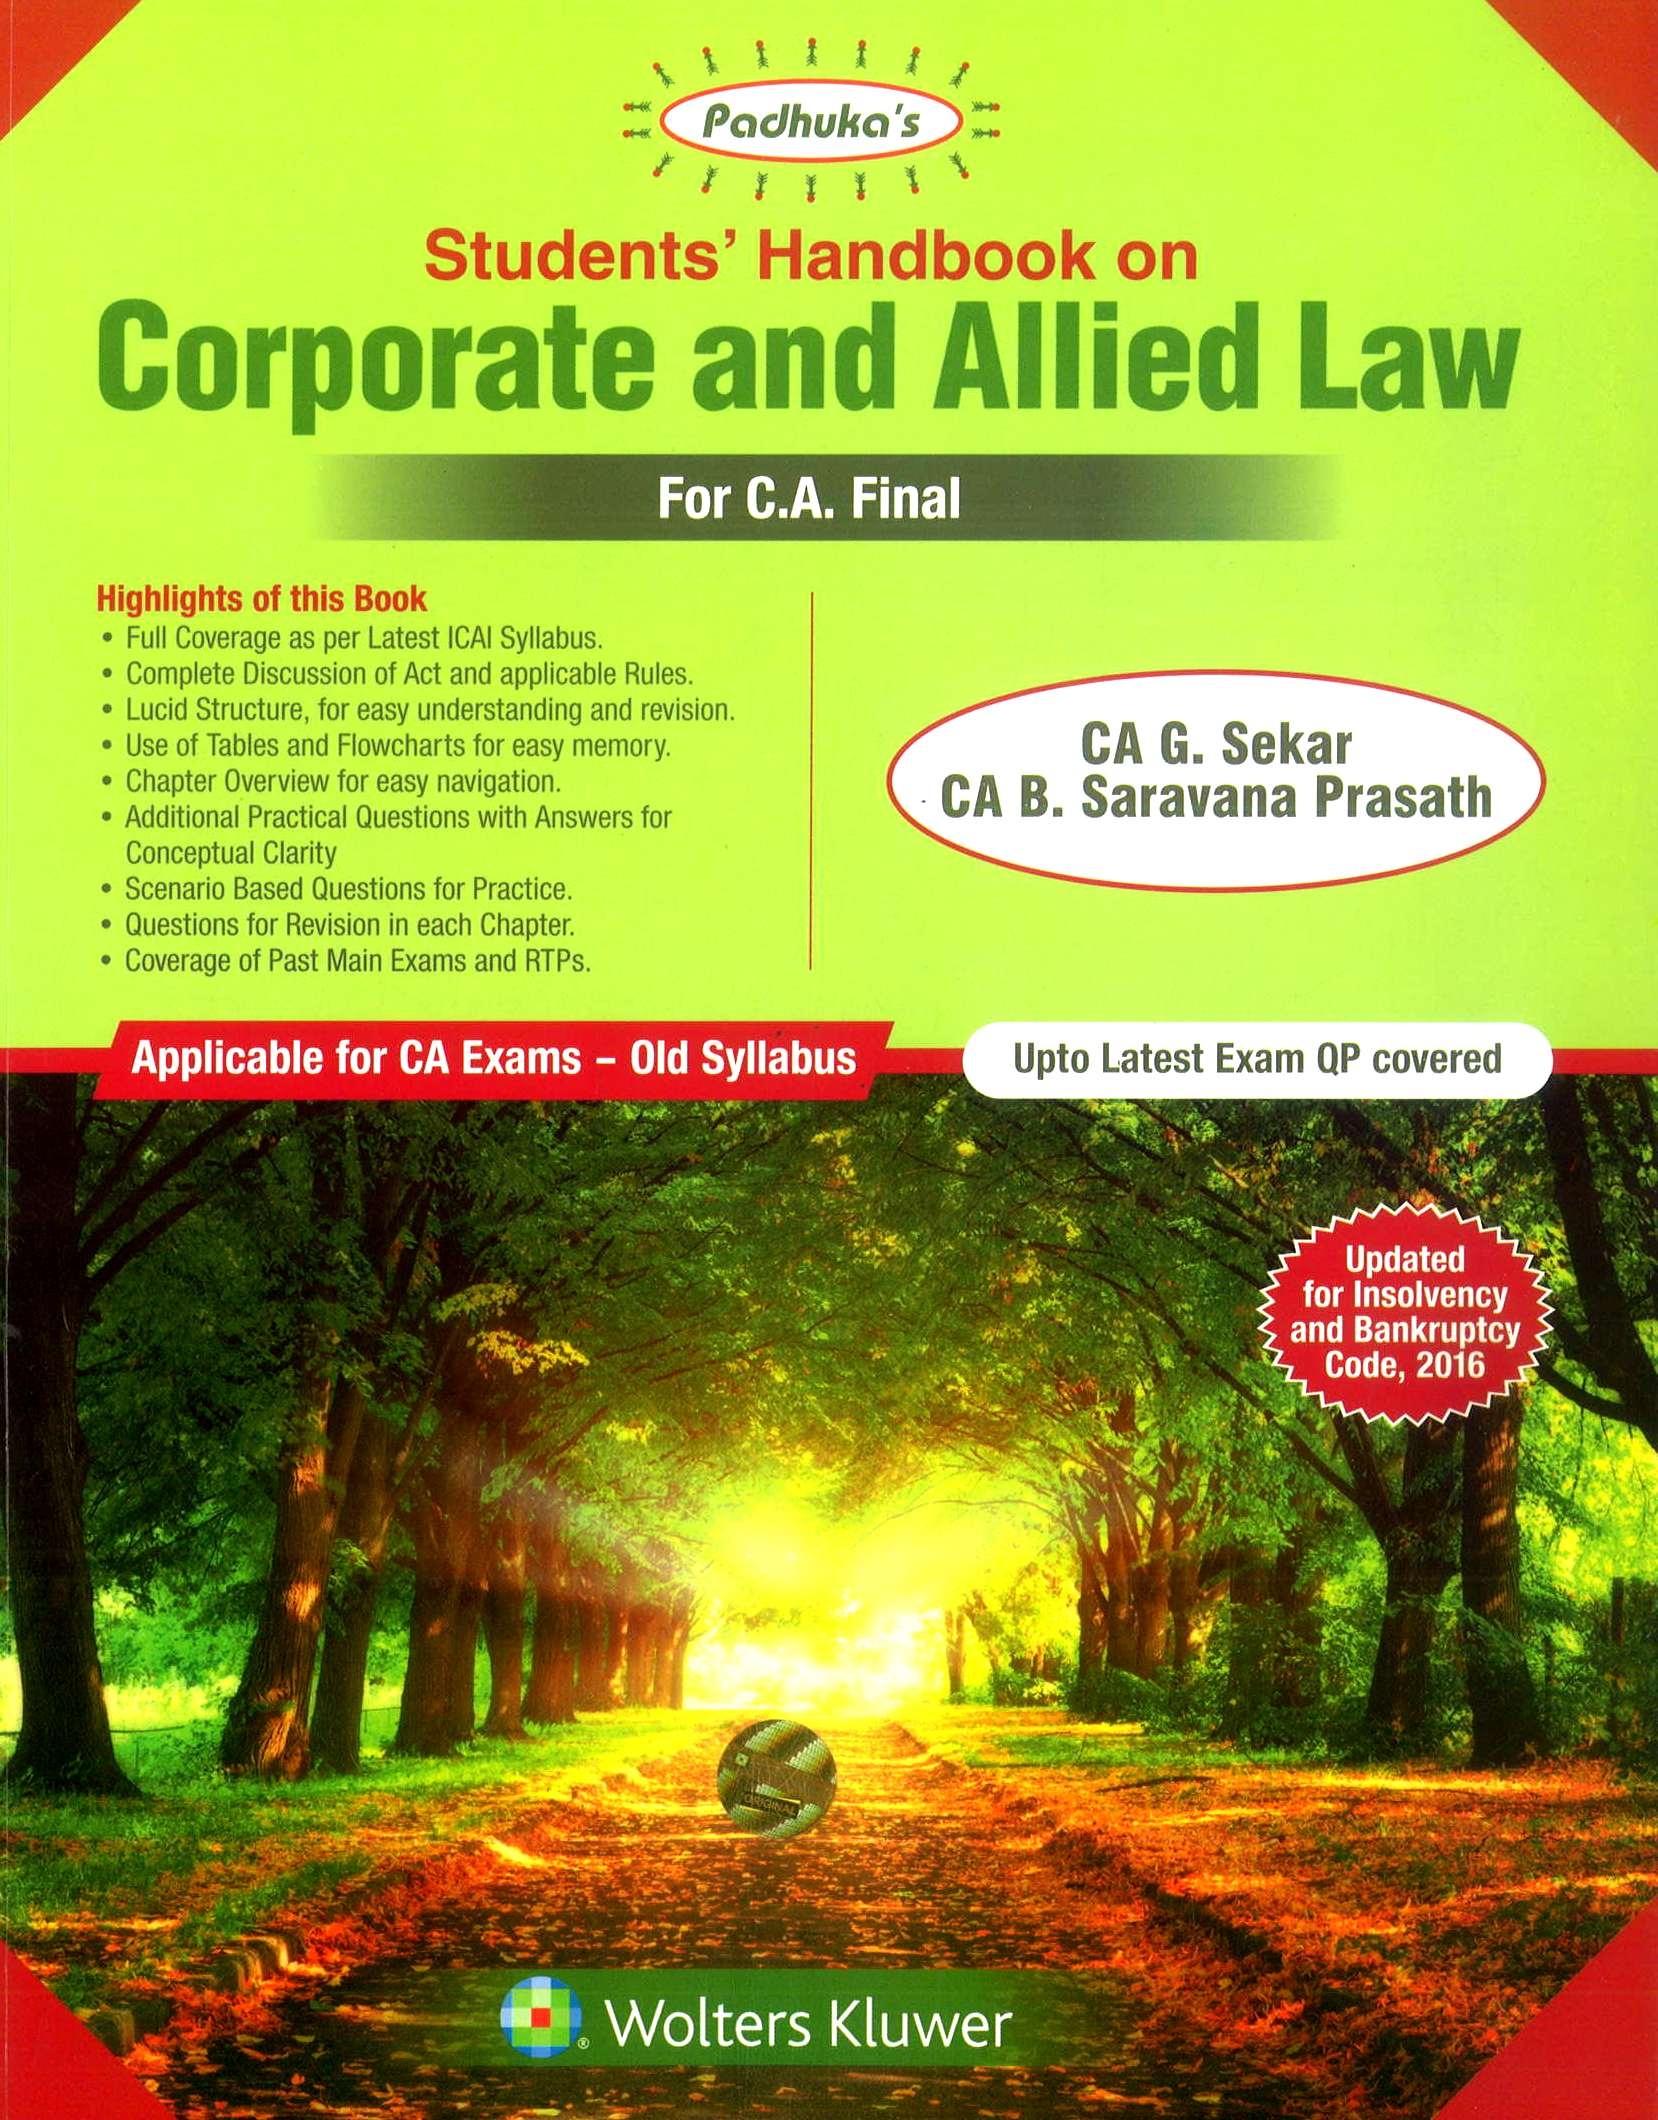 Padhuka's Students'Handbook on Corporate and Allied Law CA Final for May 2019 exam by CA G. Sekar and CA B. Saravana Prasath (Wolters Kluwer Publishing) 10th Dec Edition 2018